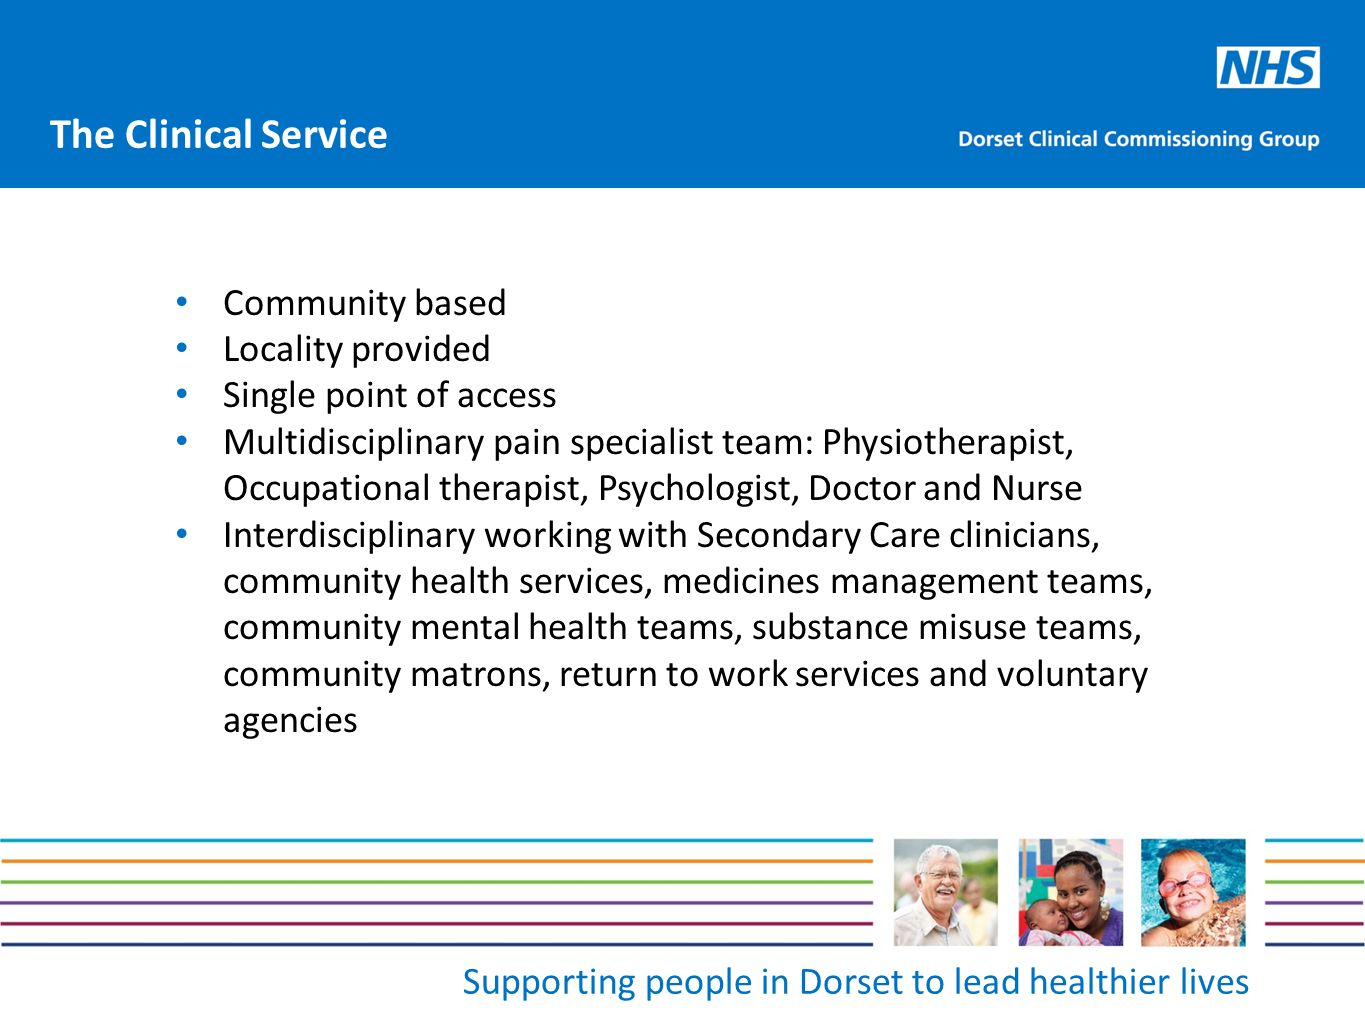 Supporting people in Dorset to lead healthier lives Community based Locality provided Single point of access Multidisciplinary pain specialist team: Physiotherapist, Occupational therapist, Psychologist, Doctor and Nurse Interdisciplinary working with Secondary Care clinicians, community health services, medicines management teams, community mental health teams, substance misuse teams, community matrons, return to work services and voluntary agencies The Clinical Service